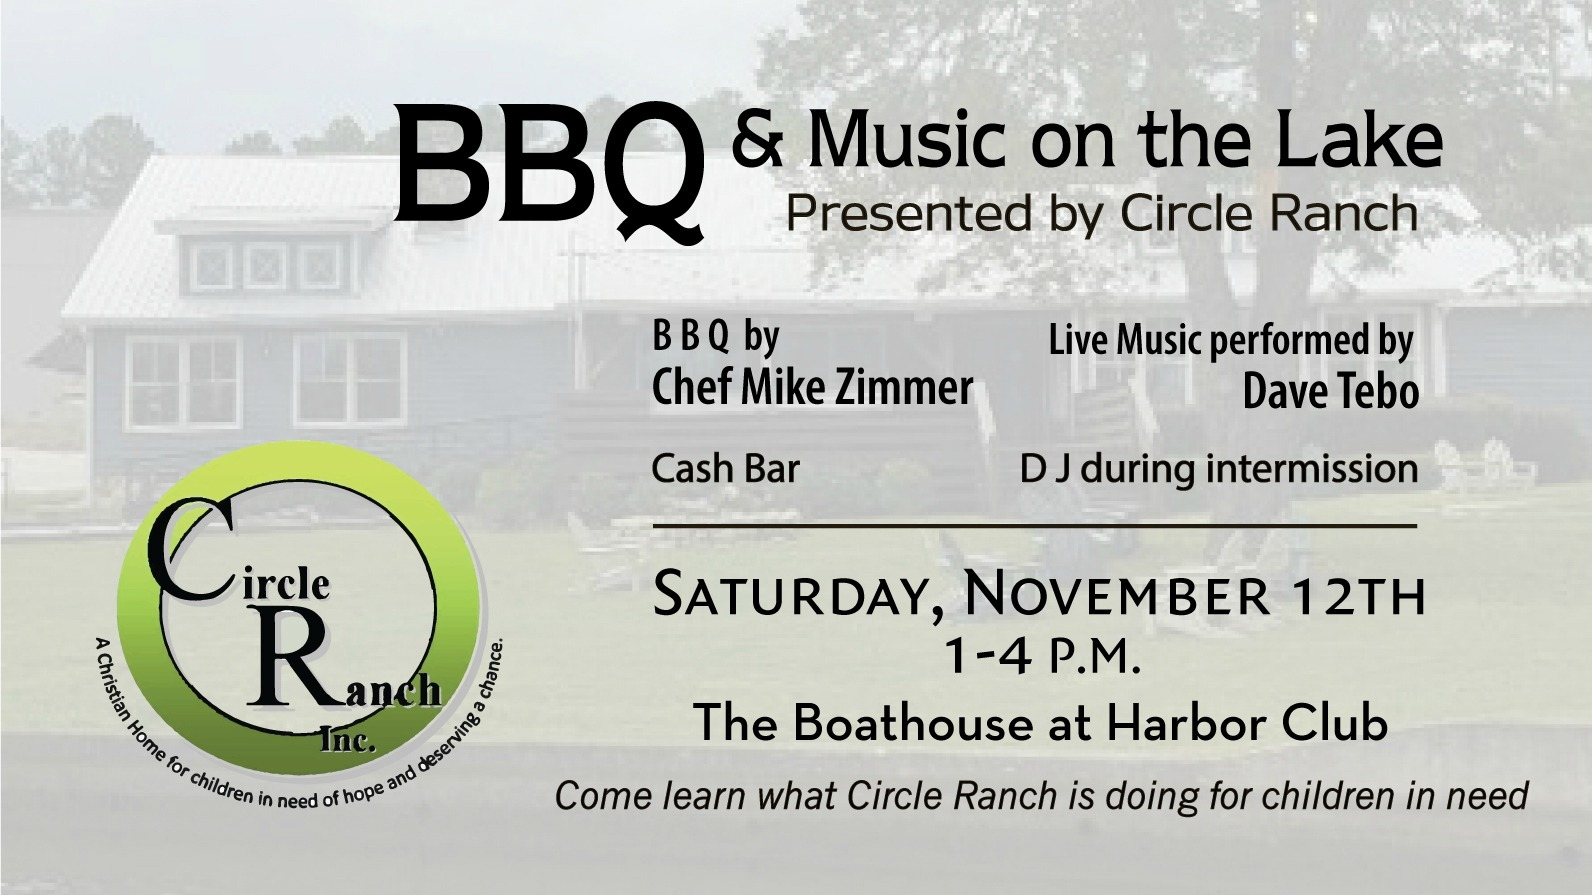 BBQ & Music on the Lake by Circle Ranch Inc.